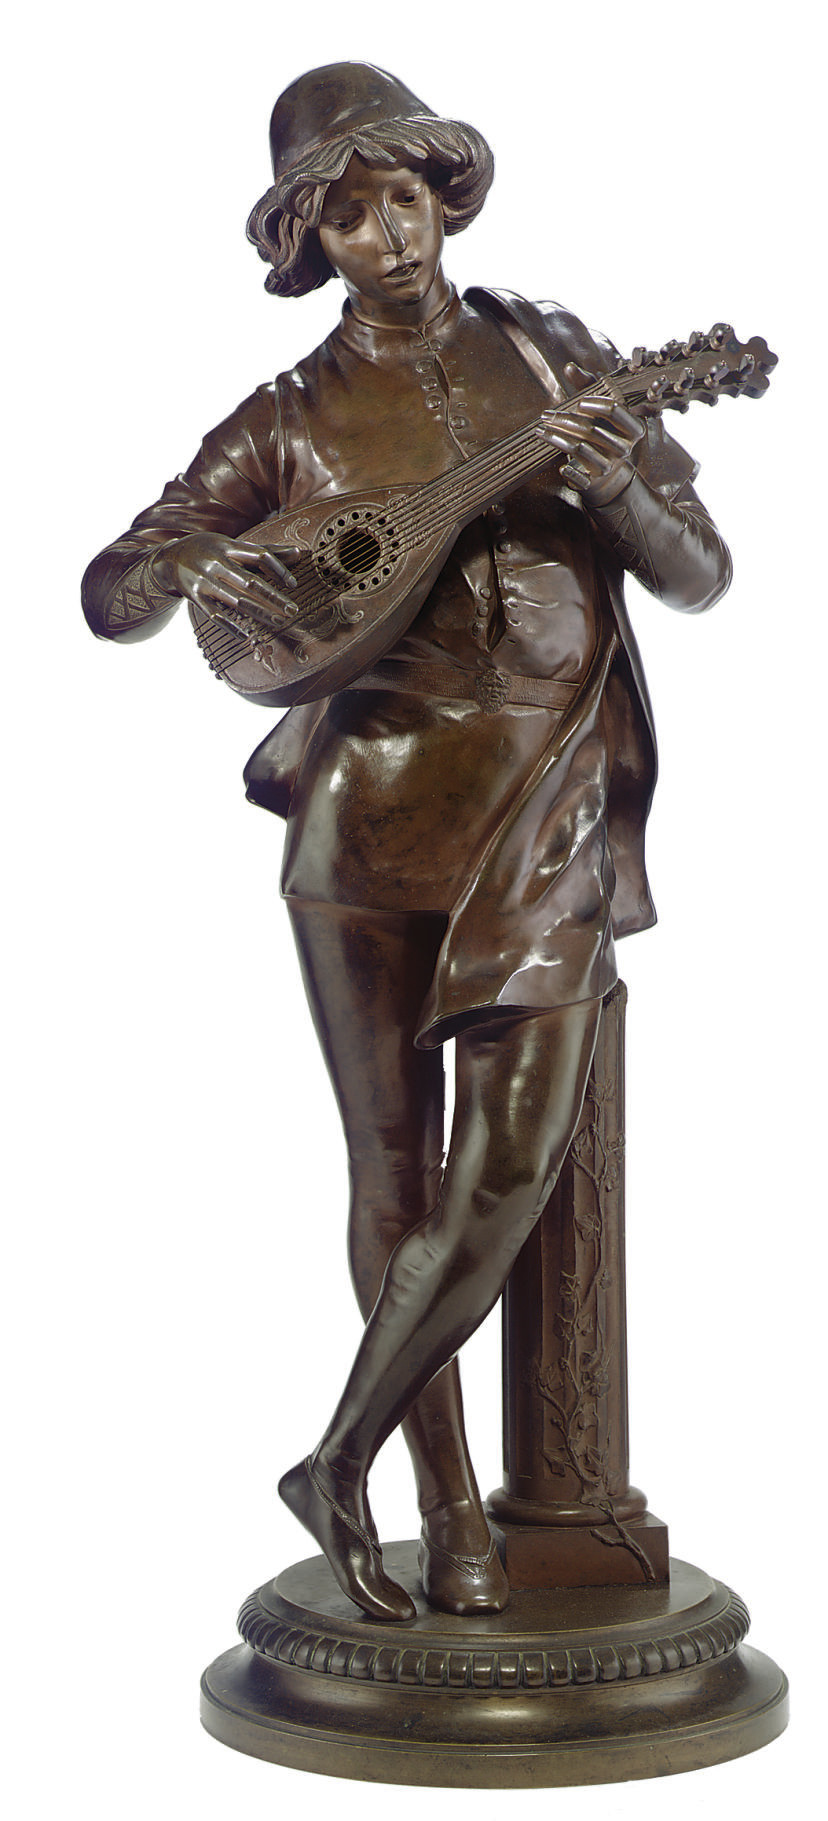 A FRENCH BRONZE FIGURE OF A LUTE PLAYER